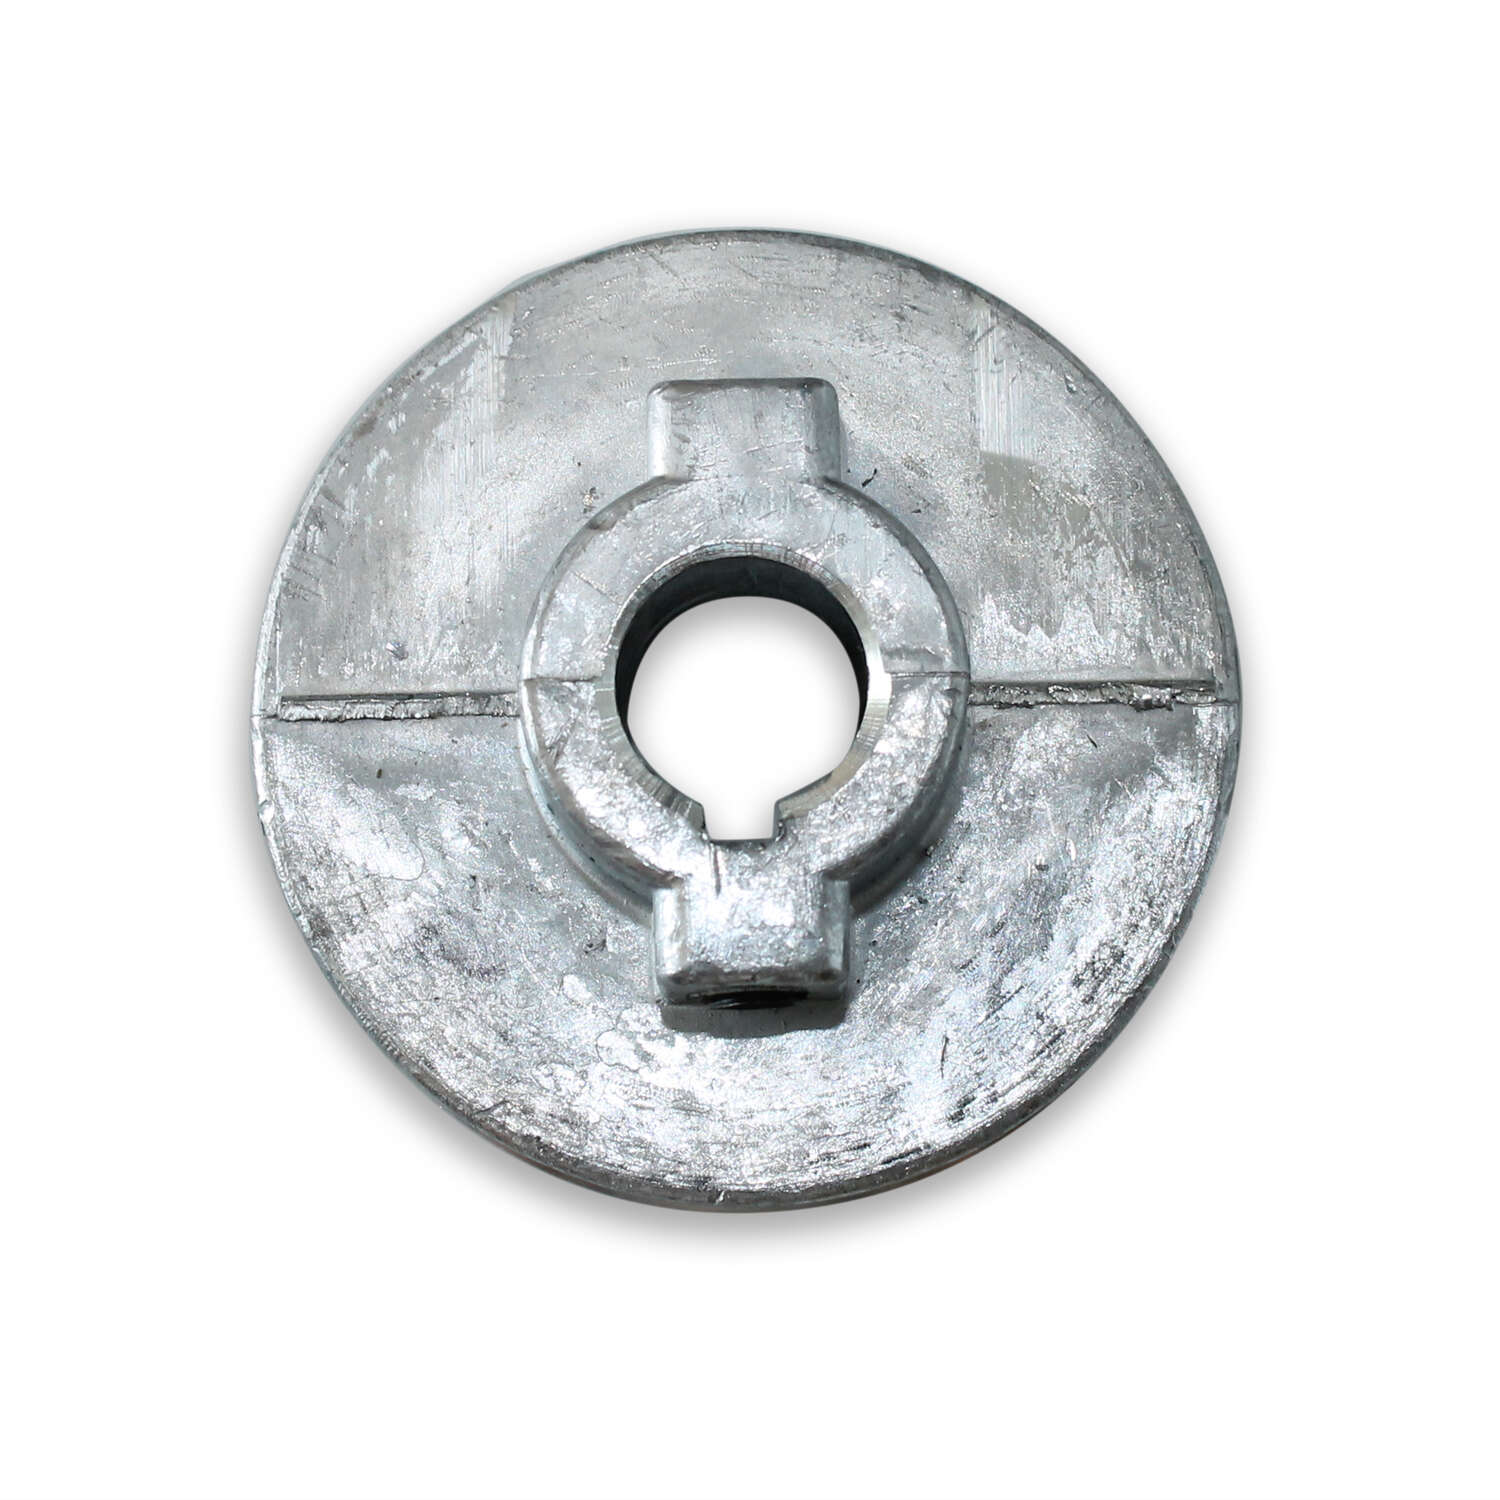 Chicago Die Cast Single V Grooved Pulley A 3-1/2 in. x 3/4 in. Bulk